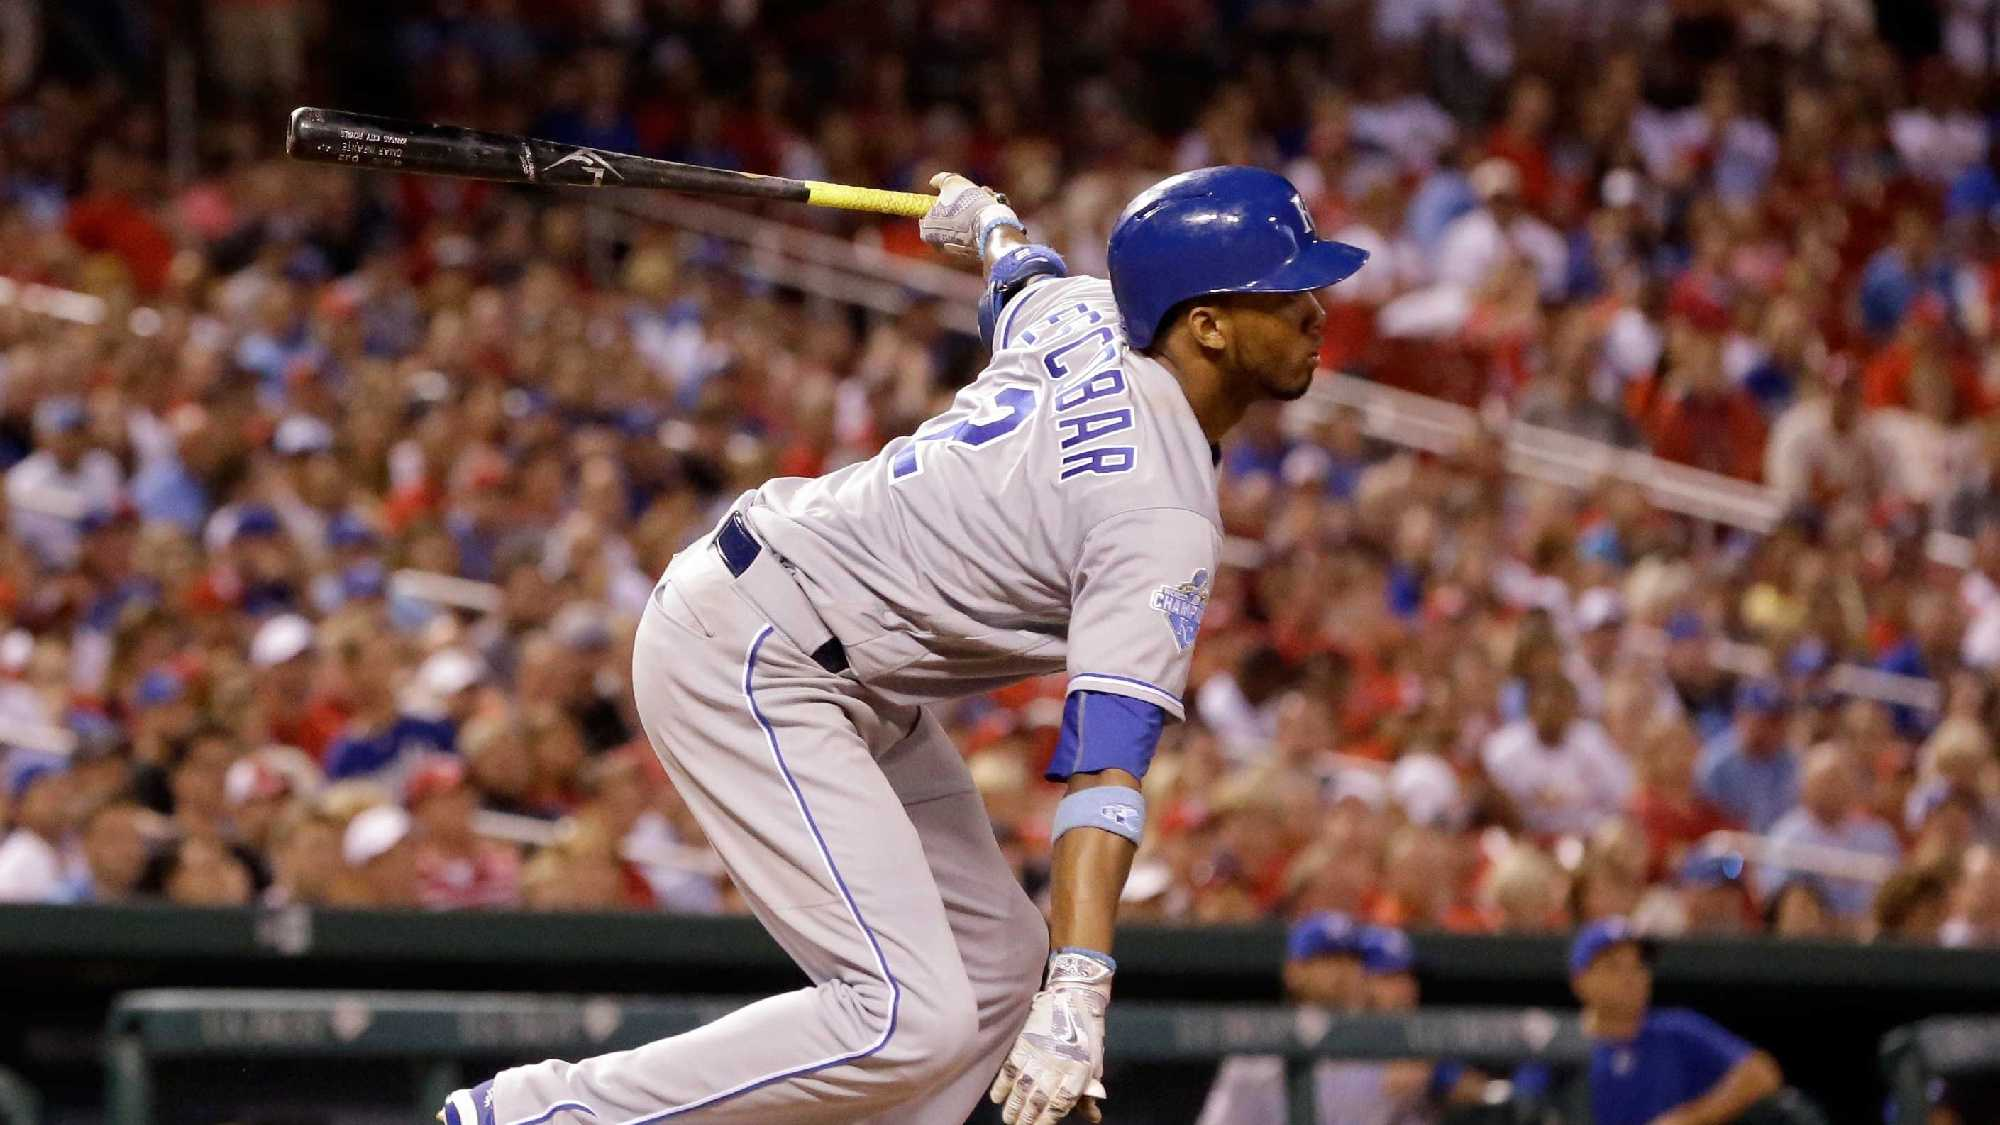 Kansas City Royals' Alcides Escobar follows through on a sacrifice fly to score Christian Colon during the eighth inning of a baseball game against the St. Louis Cardinals Wednesday, June 29, 2016, in St. Louis. (AP Photo/Jeff Roberson)